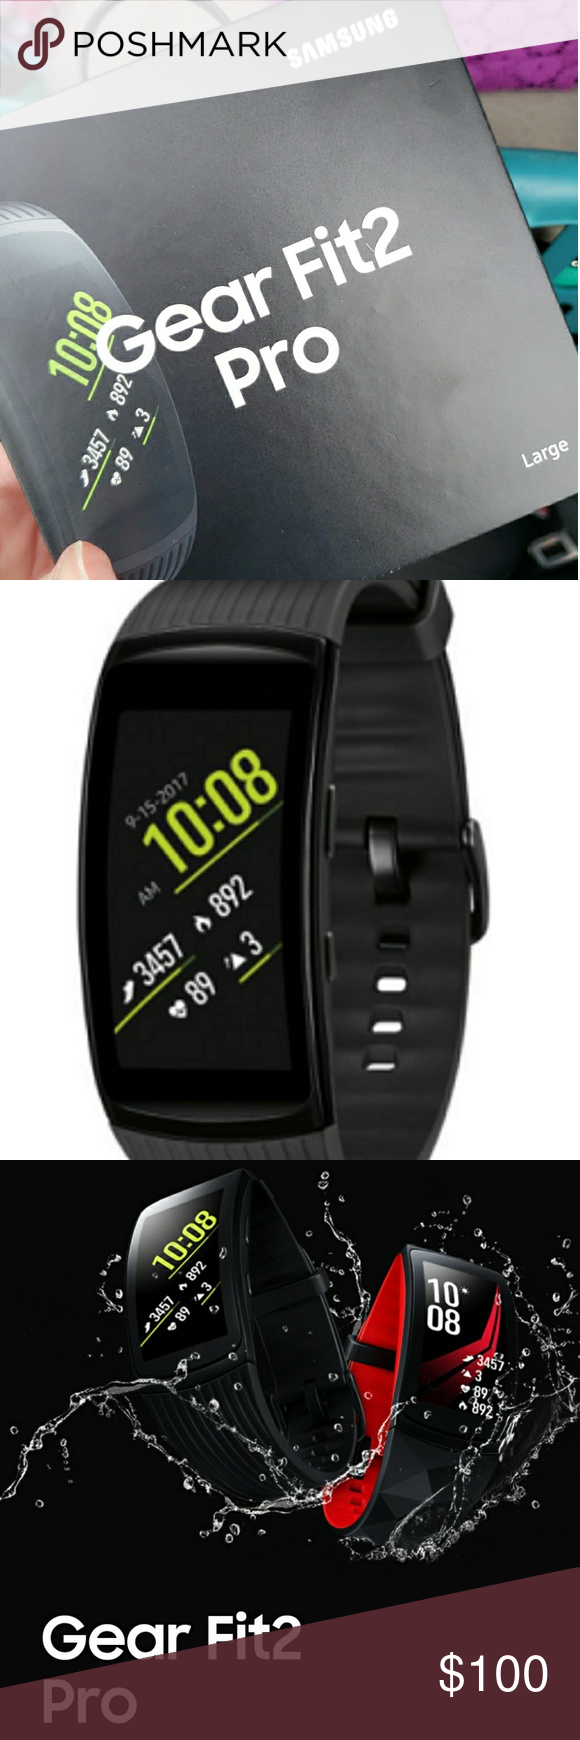 Nwt Samsung Gear Fit Pro2 Large With More Than 3 000 Apps And Watch Faces To Choose From Including Spotify You Can Customize Your Ge Samsung Listening To Music Watch Faces